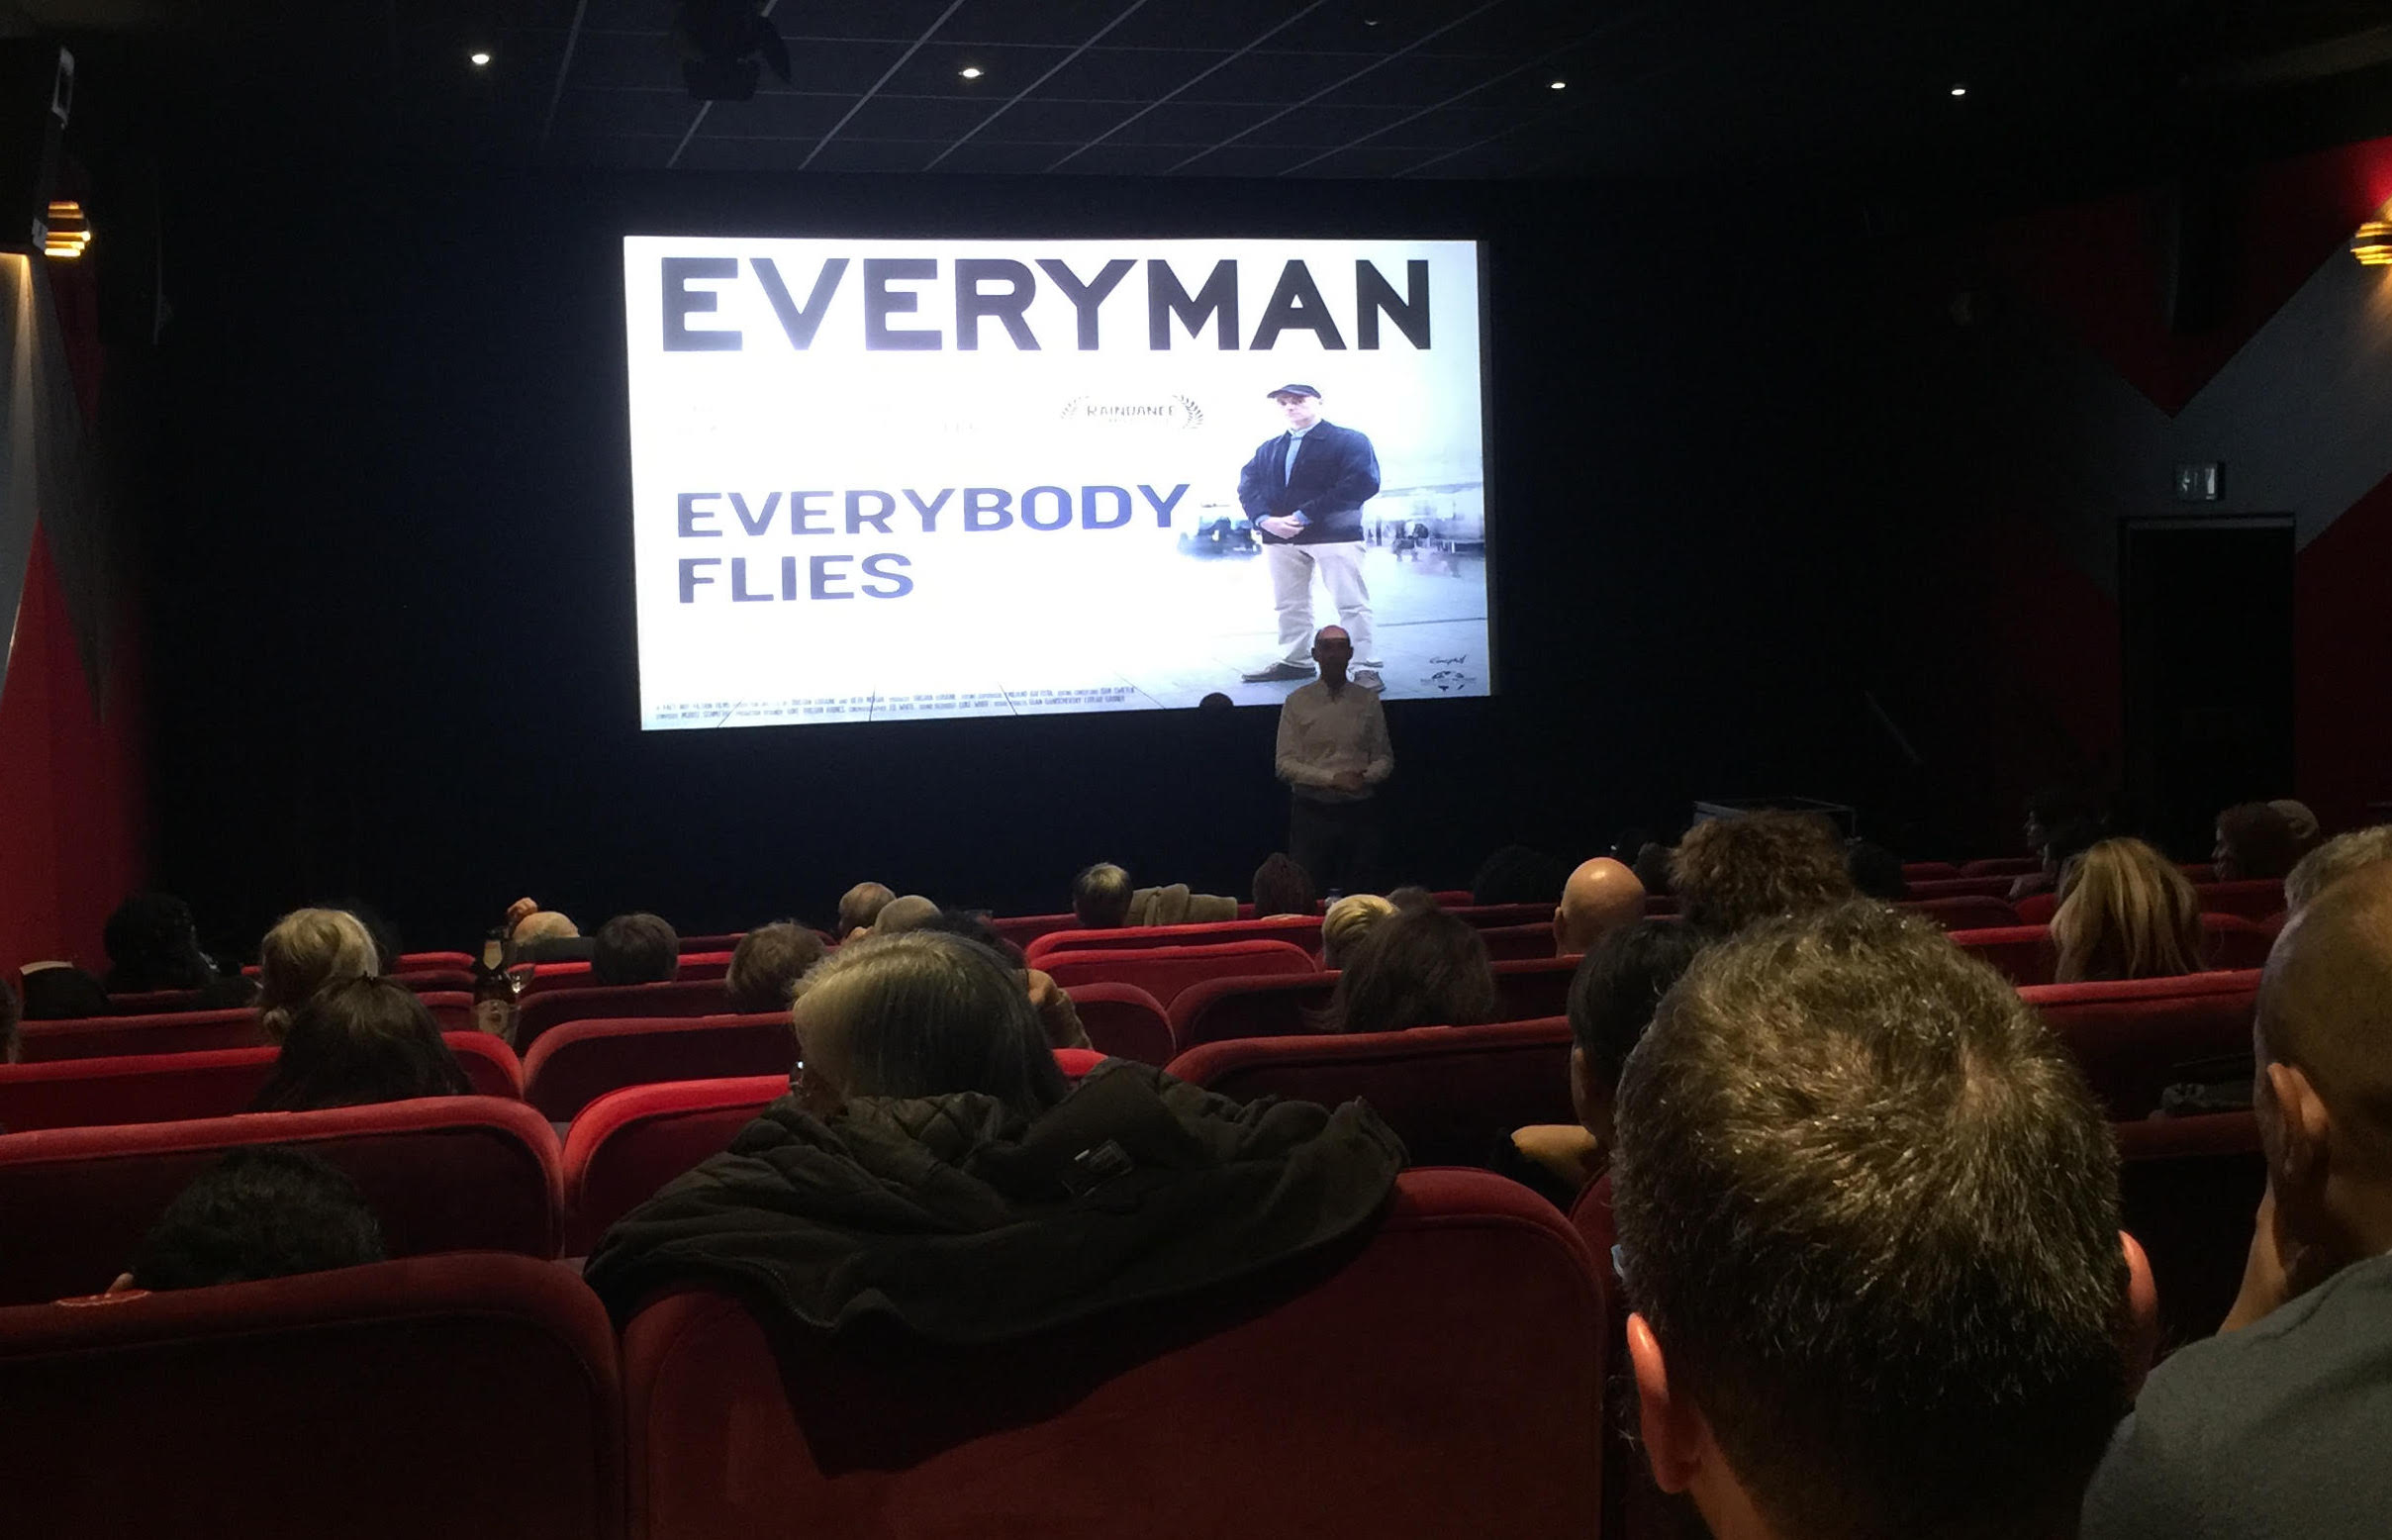 Tristan-Loraine-Everyman-Cinema-London